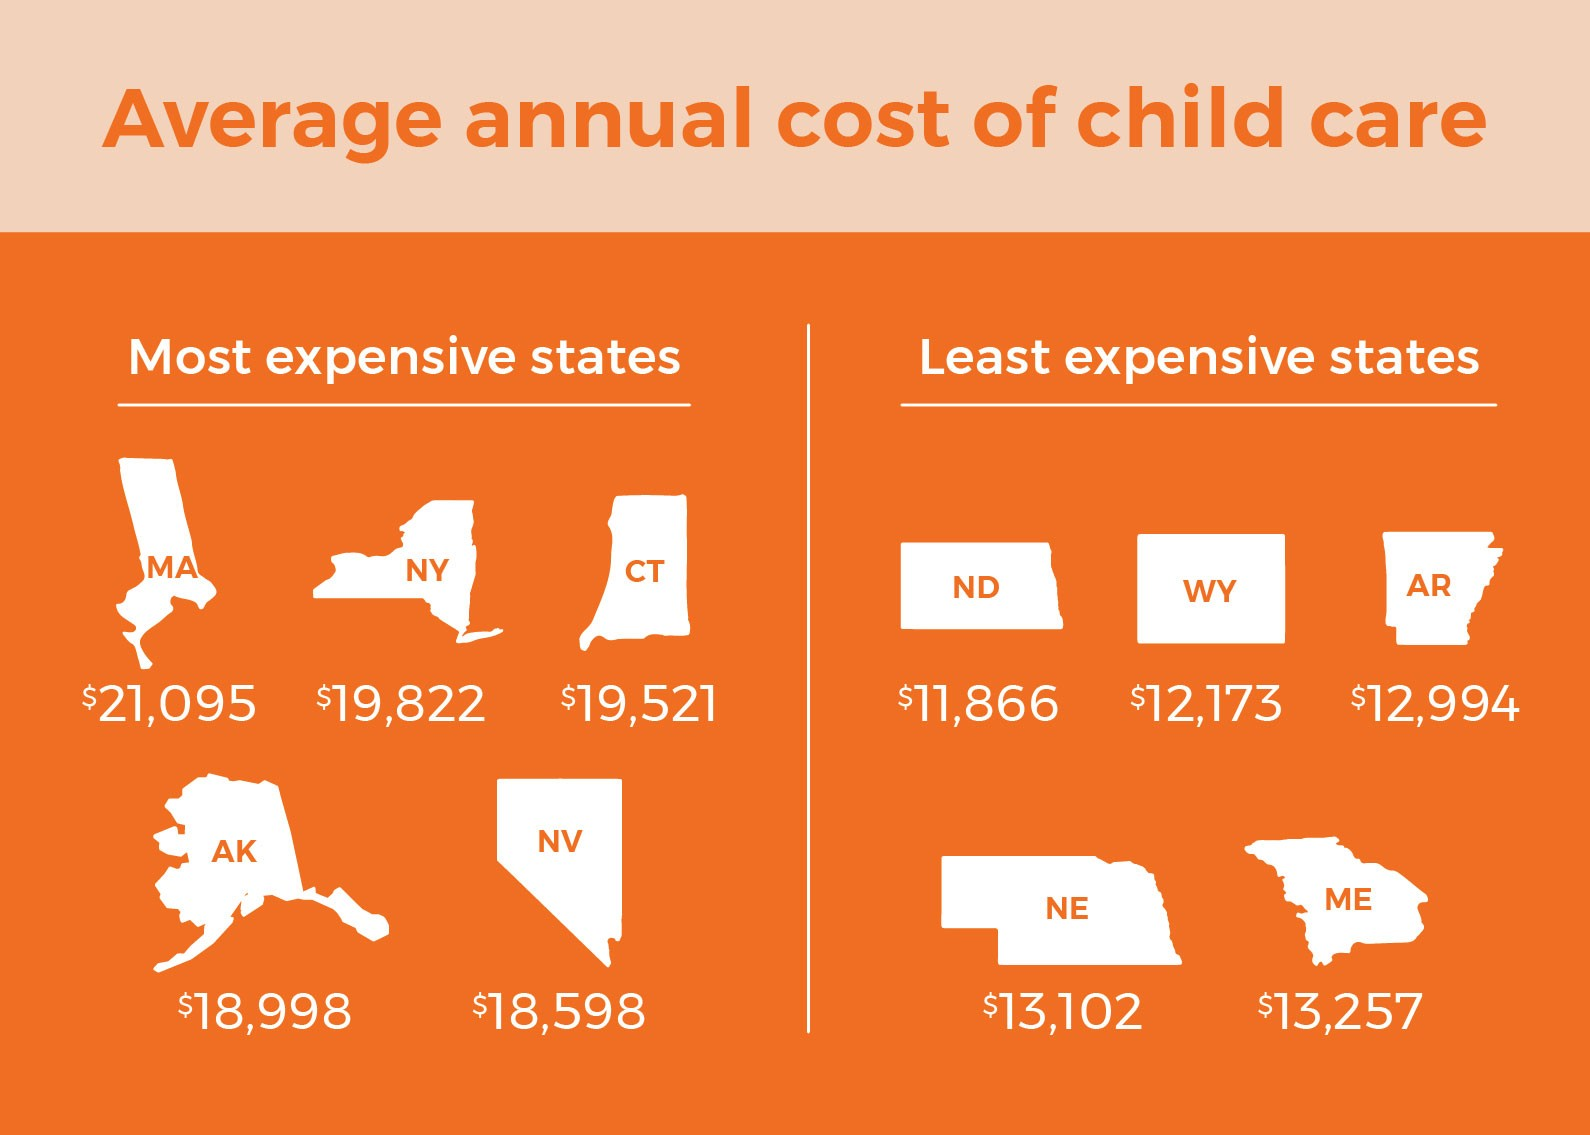 lowest and highest average cost of child care by state